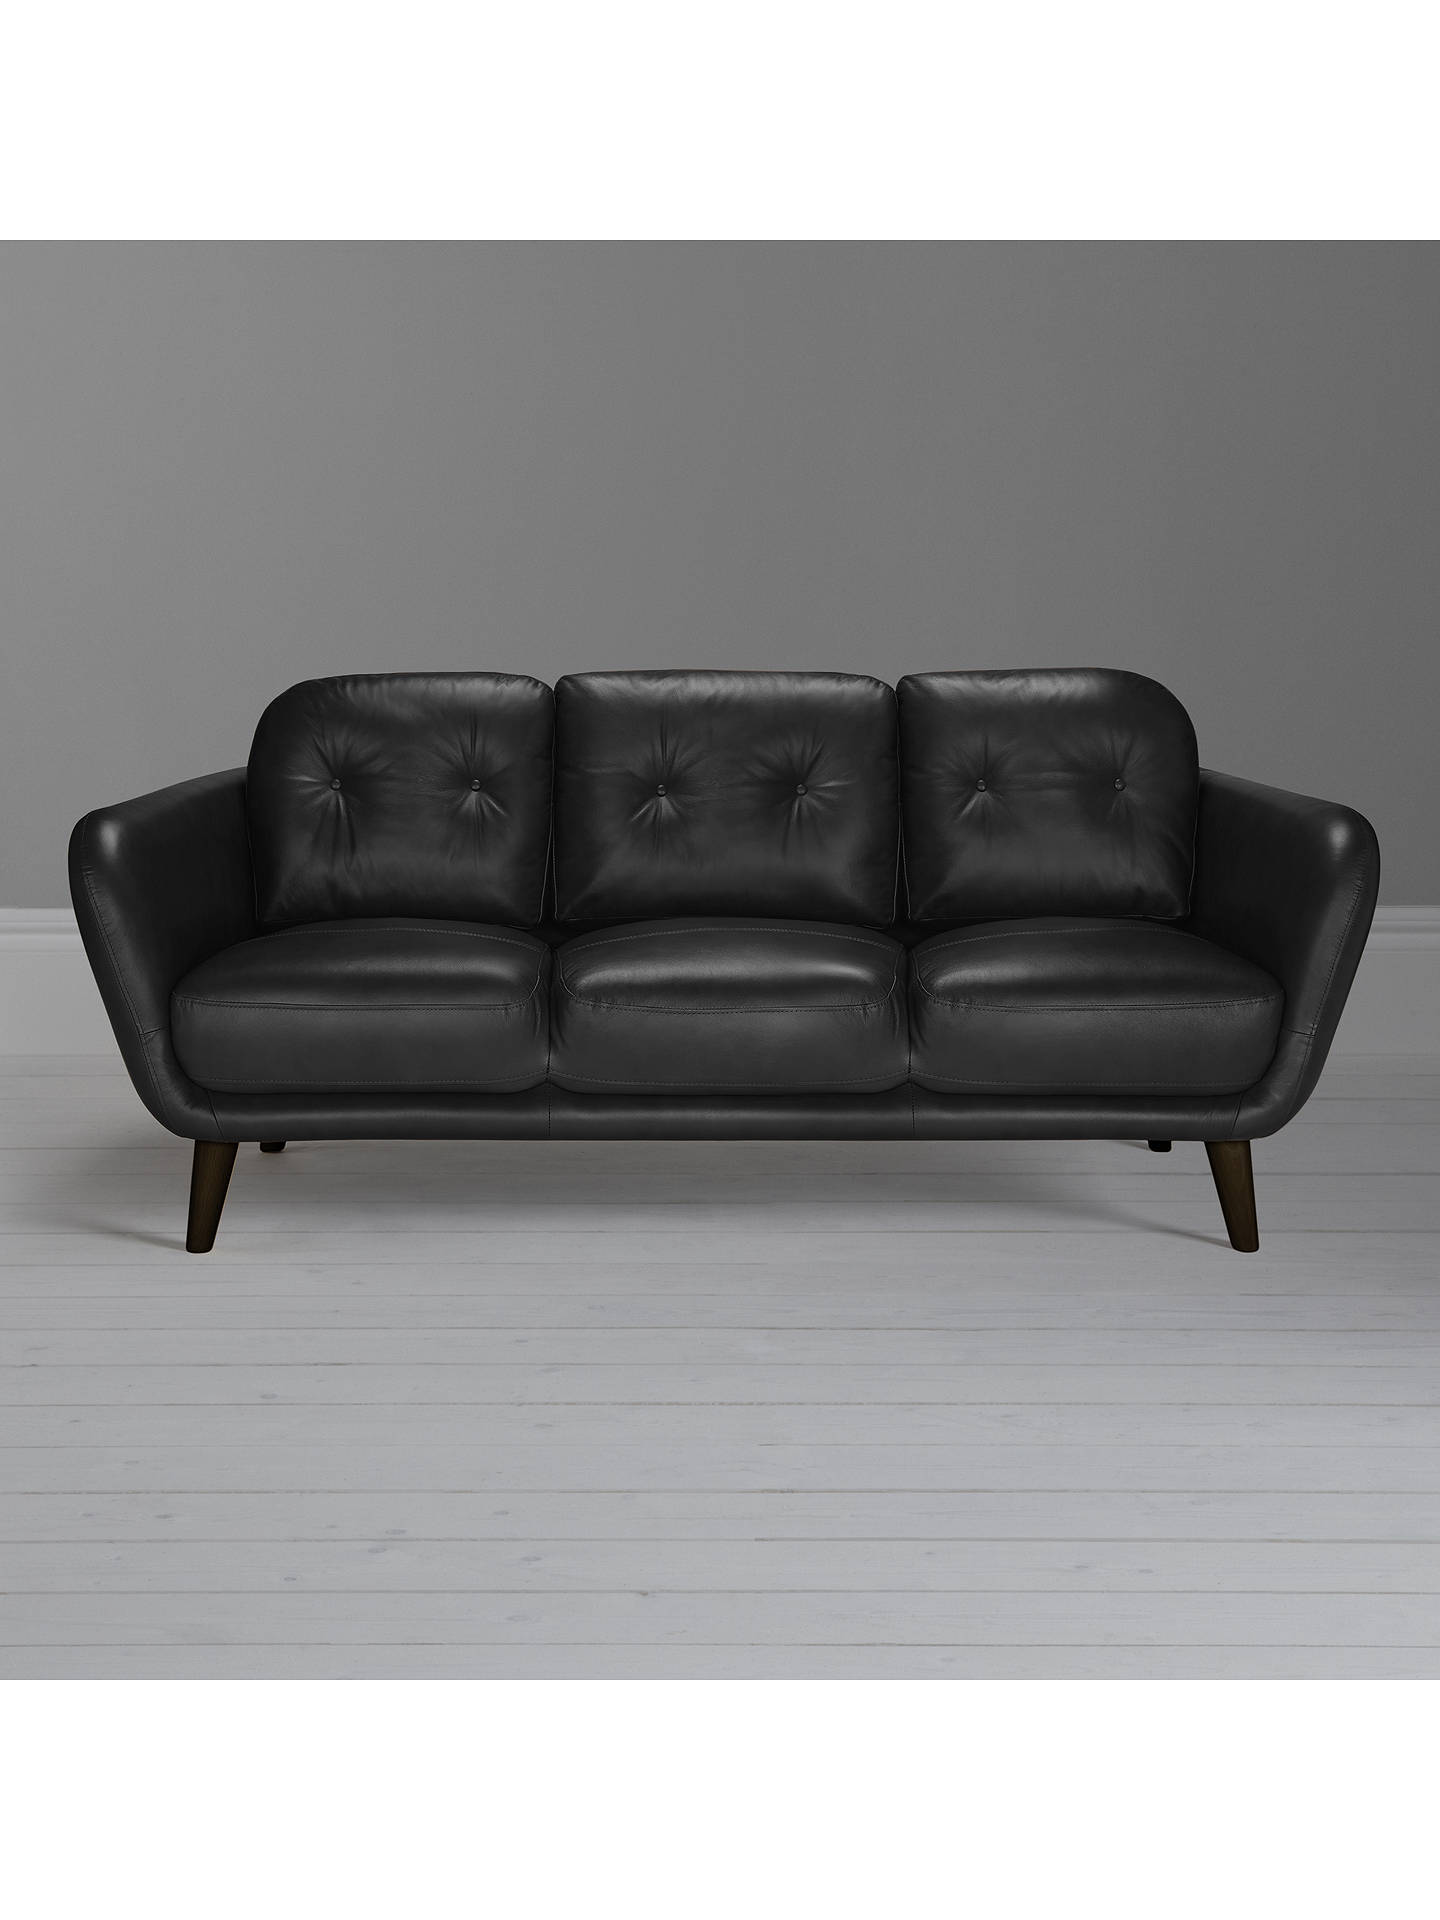 Buy House by John Lewis Arlo Leather Large 3 Seater Sofa, Dark Leg, Contempo Black Online at johnlewis.com